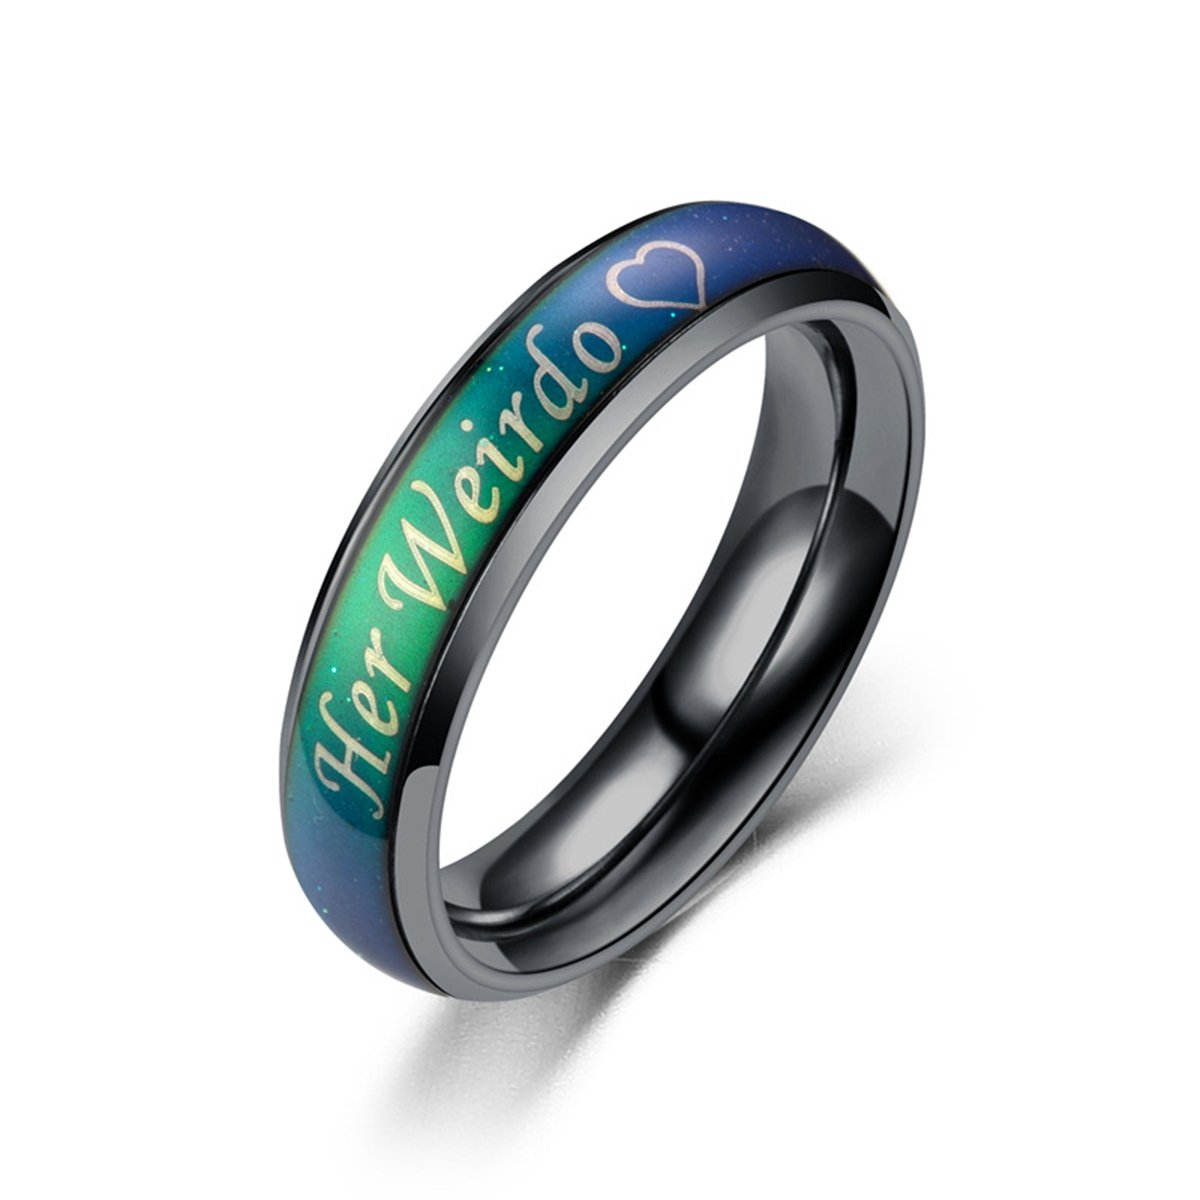 Amazon Kaiyufu Jewelers Unisex His Crazy Her Weirdo Ring Colorchang Mood For Couple Wedding Band Jewelry: Mood Ring Wedding Ring At Reisefeber.org